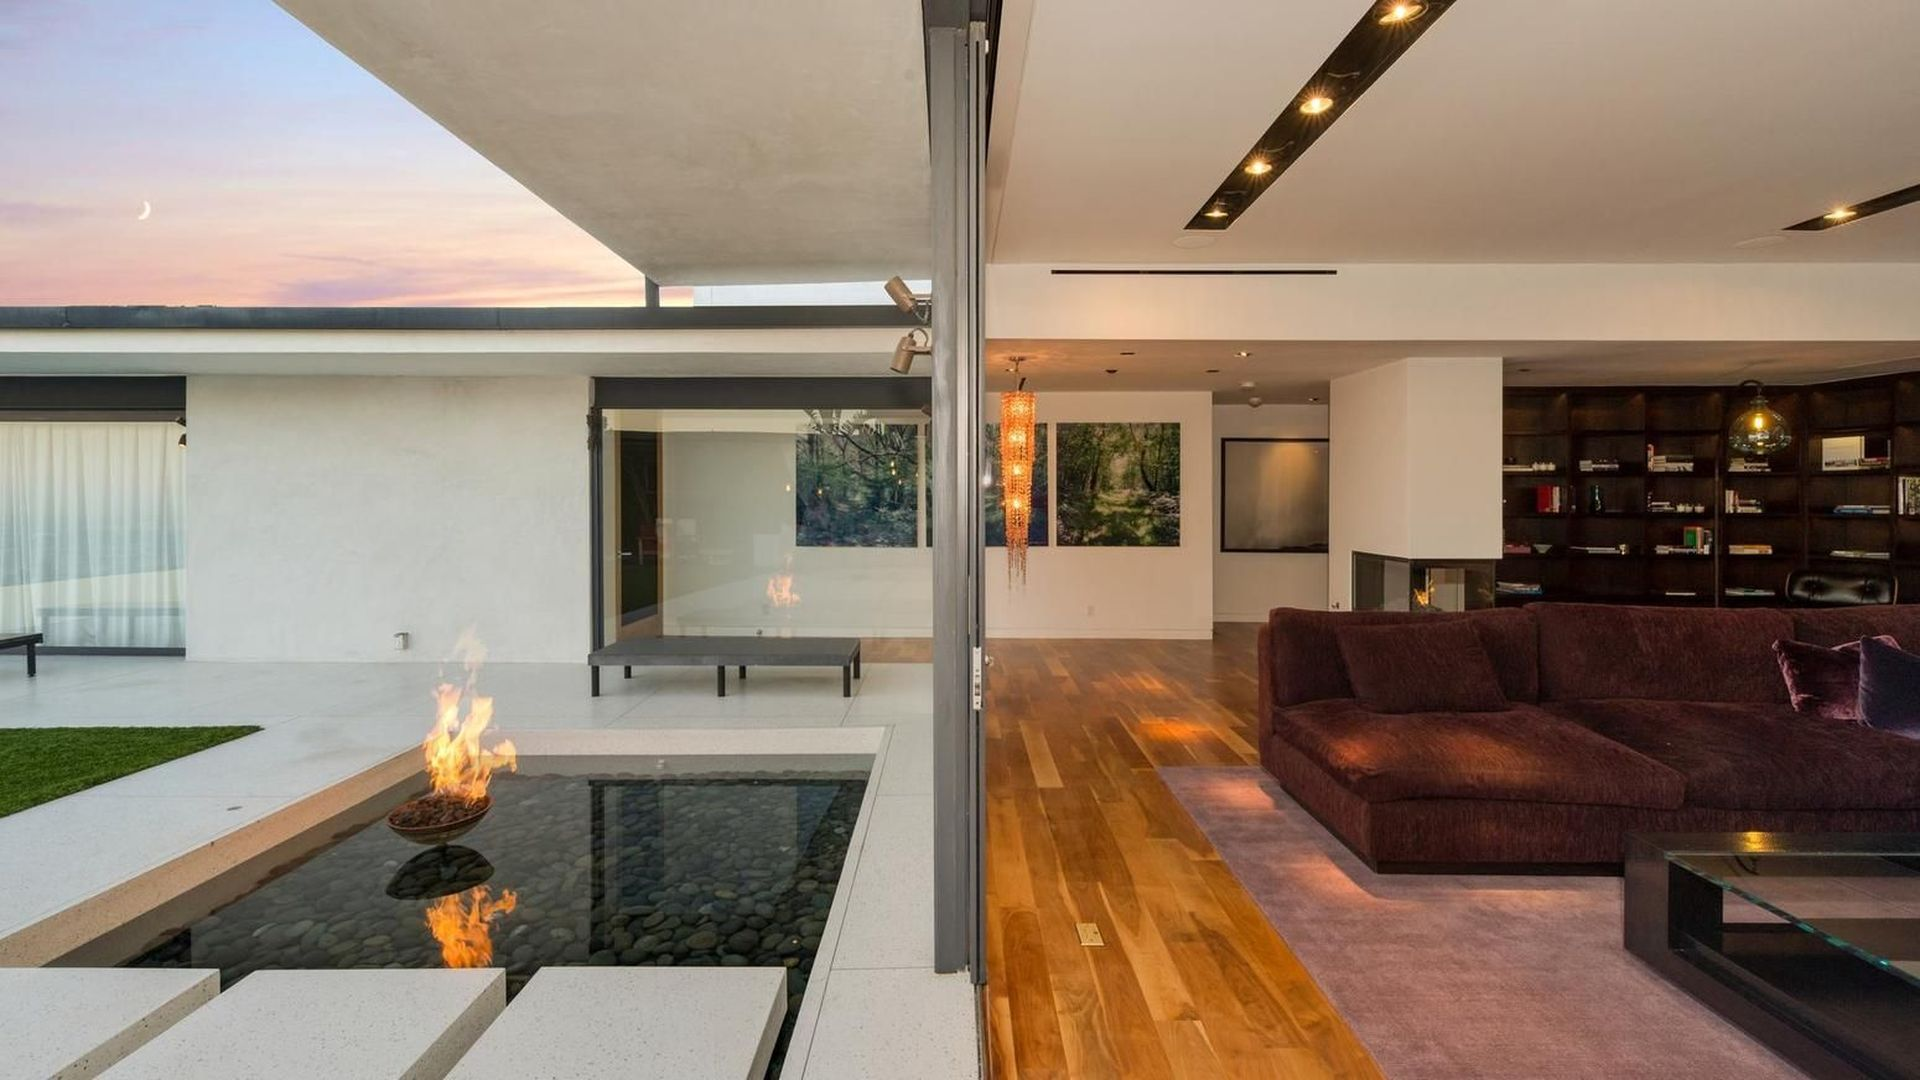 A perfect home for entertaining, the enormous open plan living space features walls of glass opening to the outdoor entertainment area with fire pits.